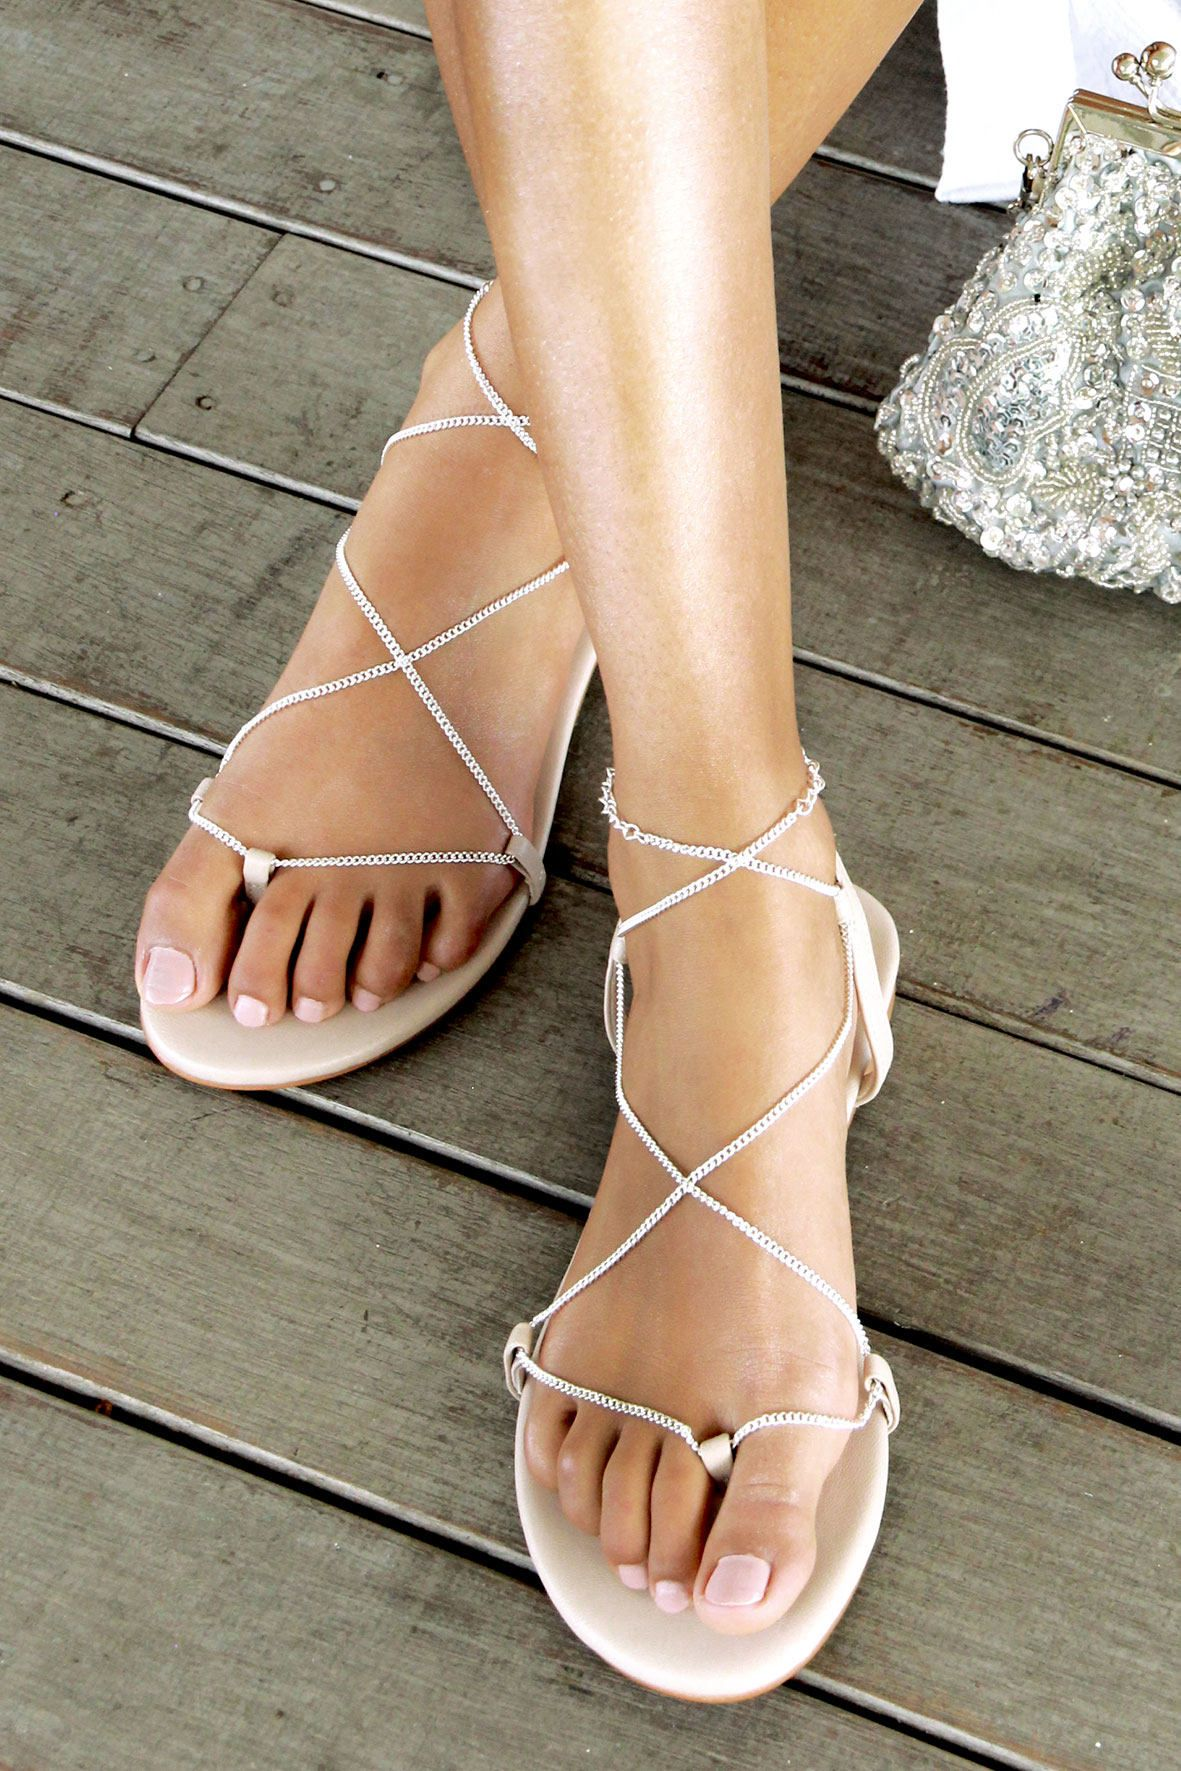 fb37e08a895 Nude flat sandals Silver chains nude leather sandal bridal